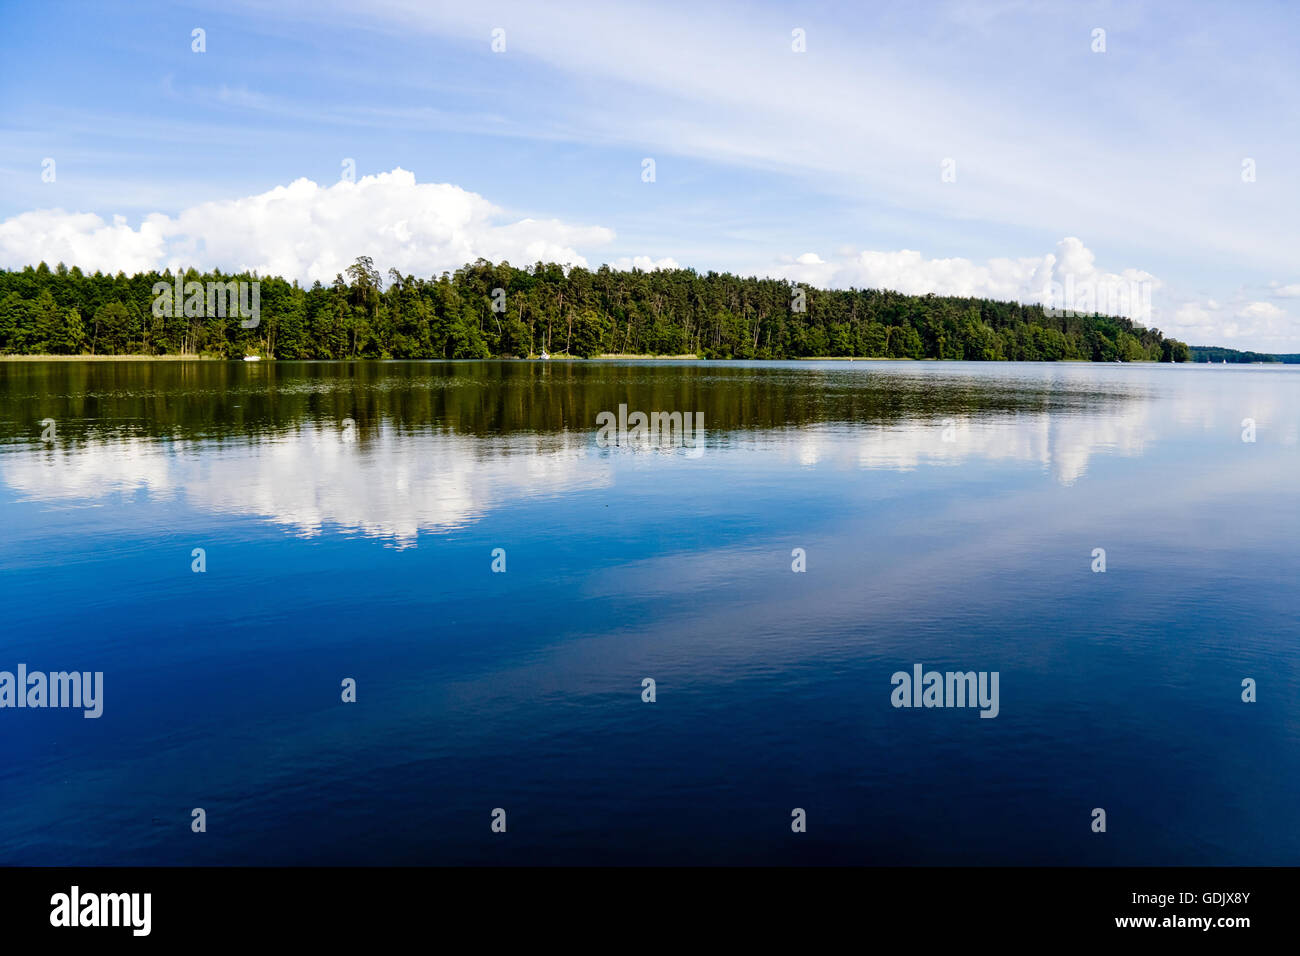 Blue lake surface, sky reflection in the water Stock Photo